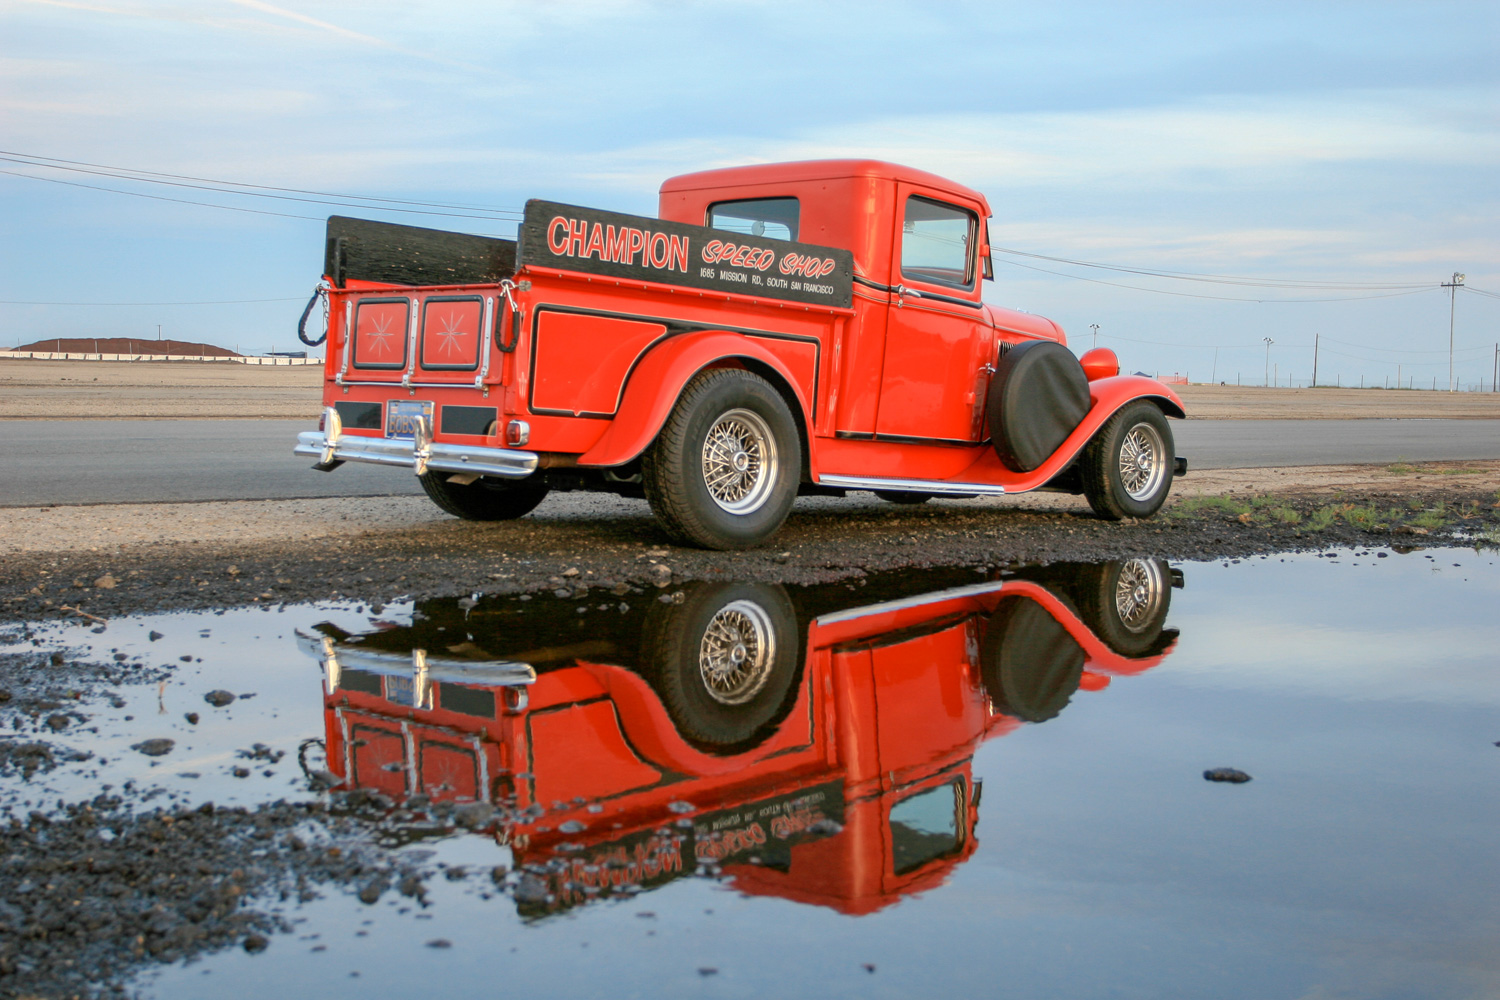 This 1934 Ford pickup has a Jaguar rear end and supercharged small-block Chevy